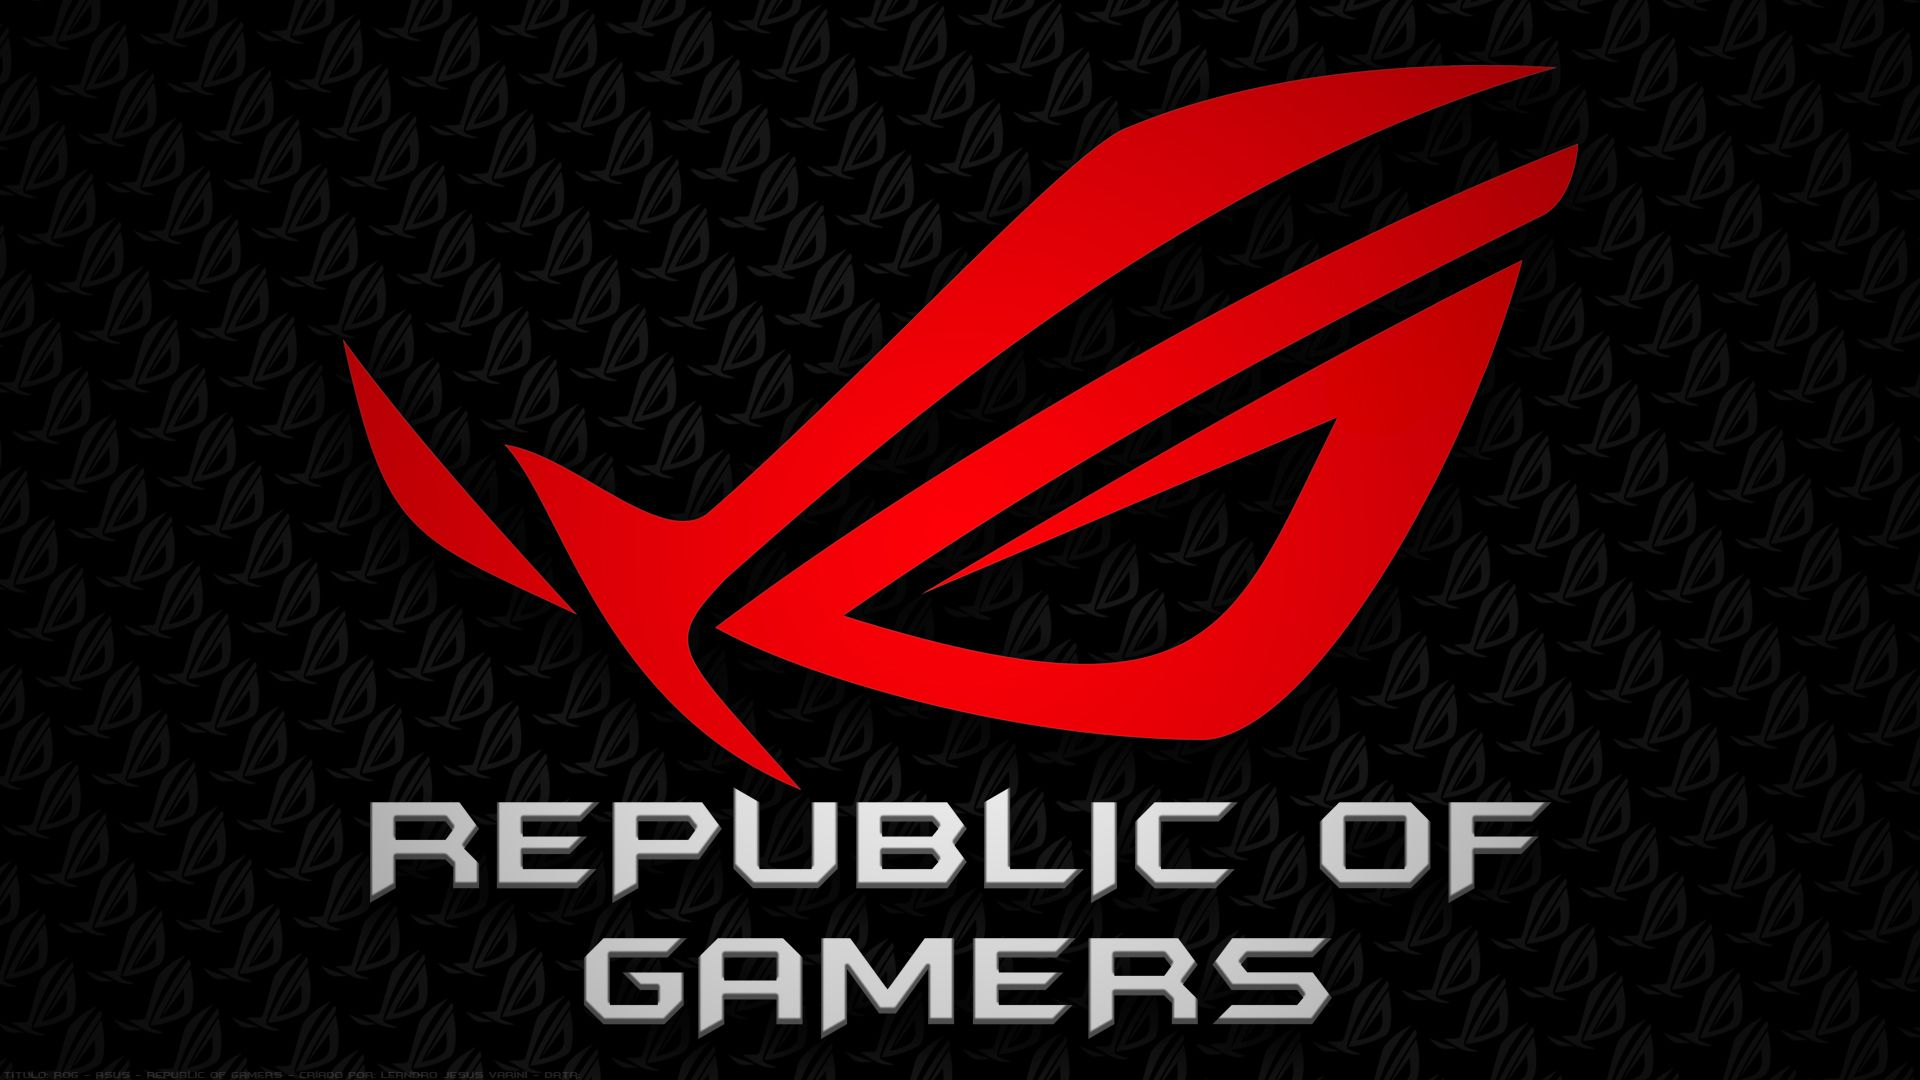 The Republic Gamers